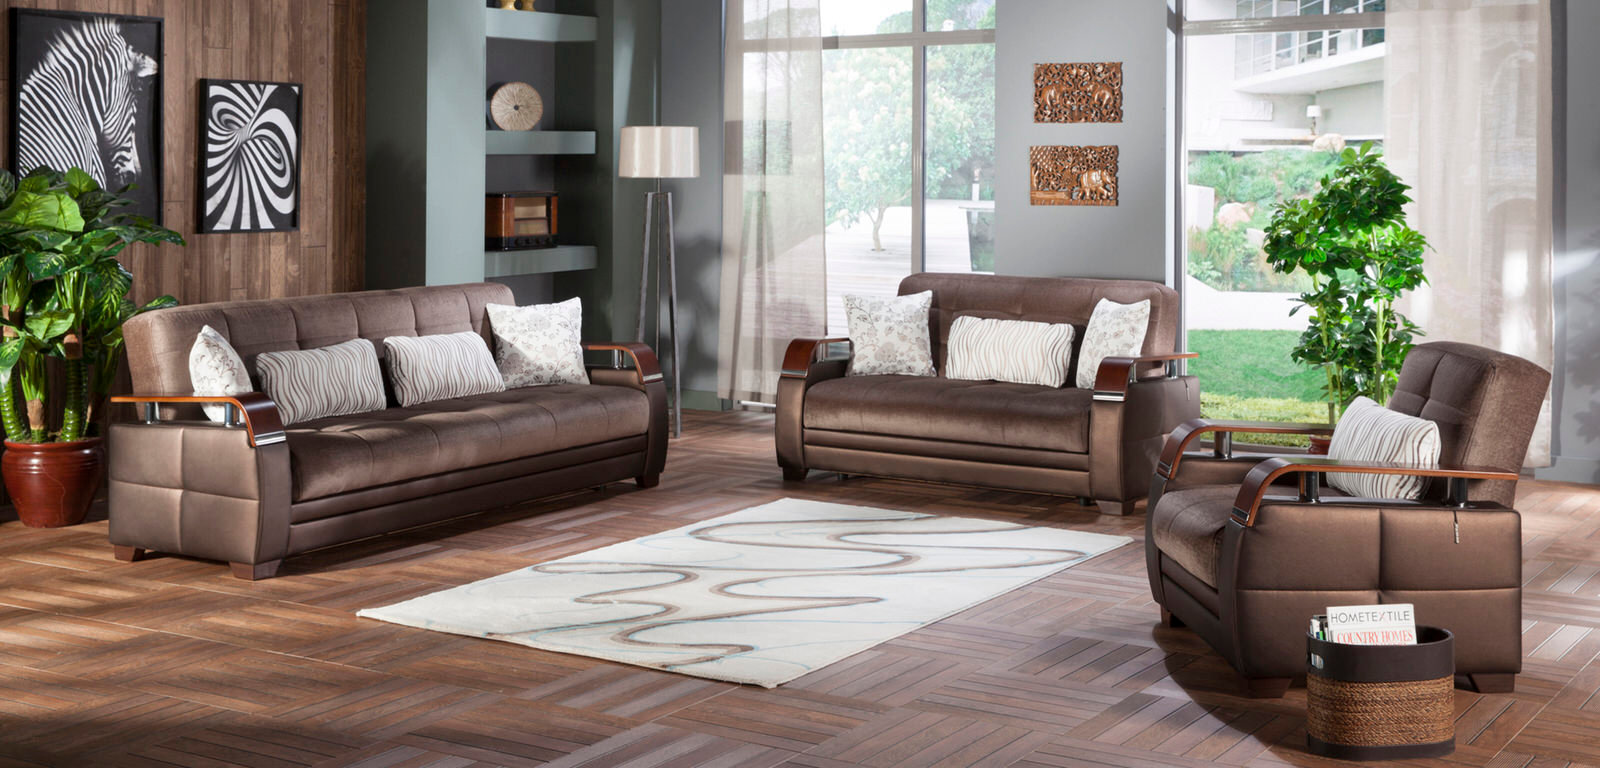 Natural Prestige Brown Sofa Love Amp Chair Set By Sunset